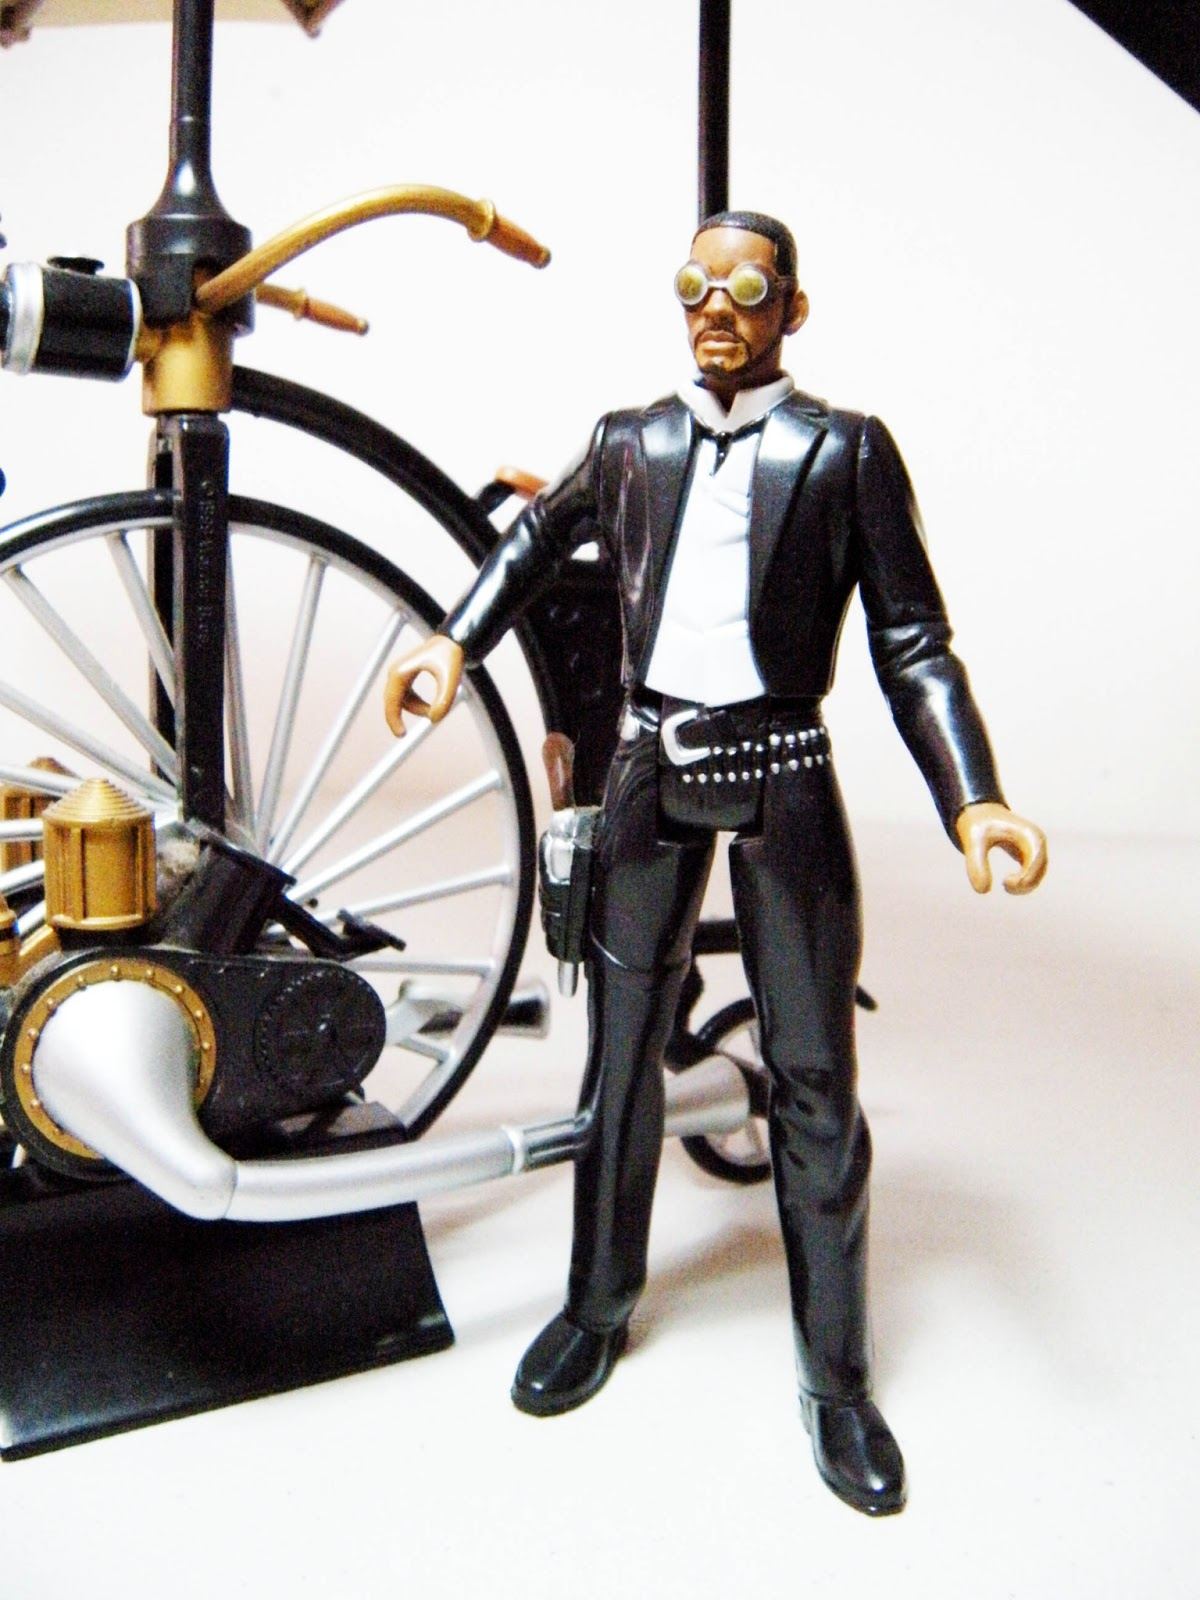 The Wild Toys : Daily toyz toy viewing wild west desert wasp